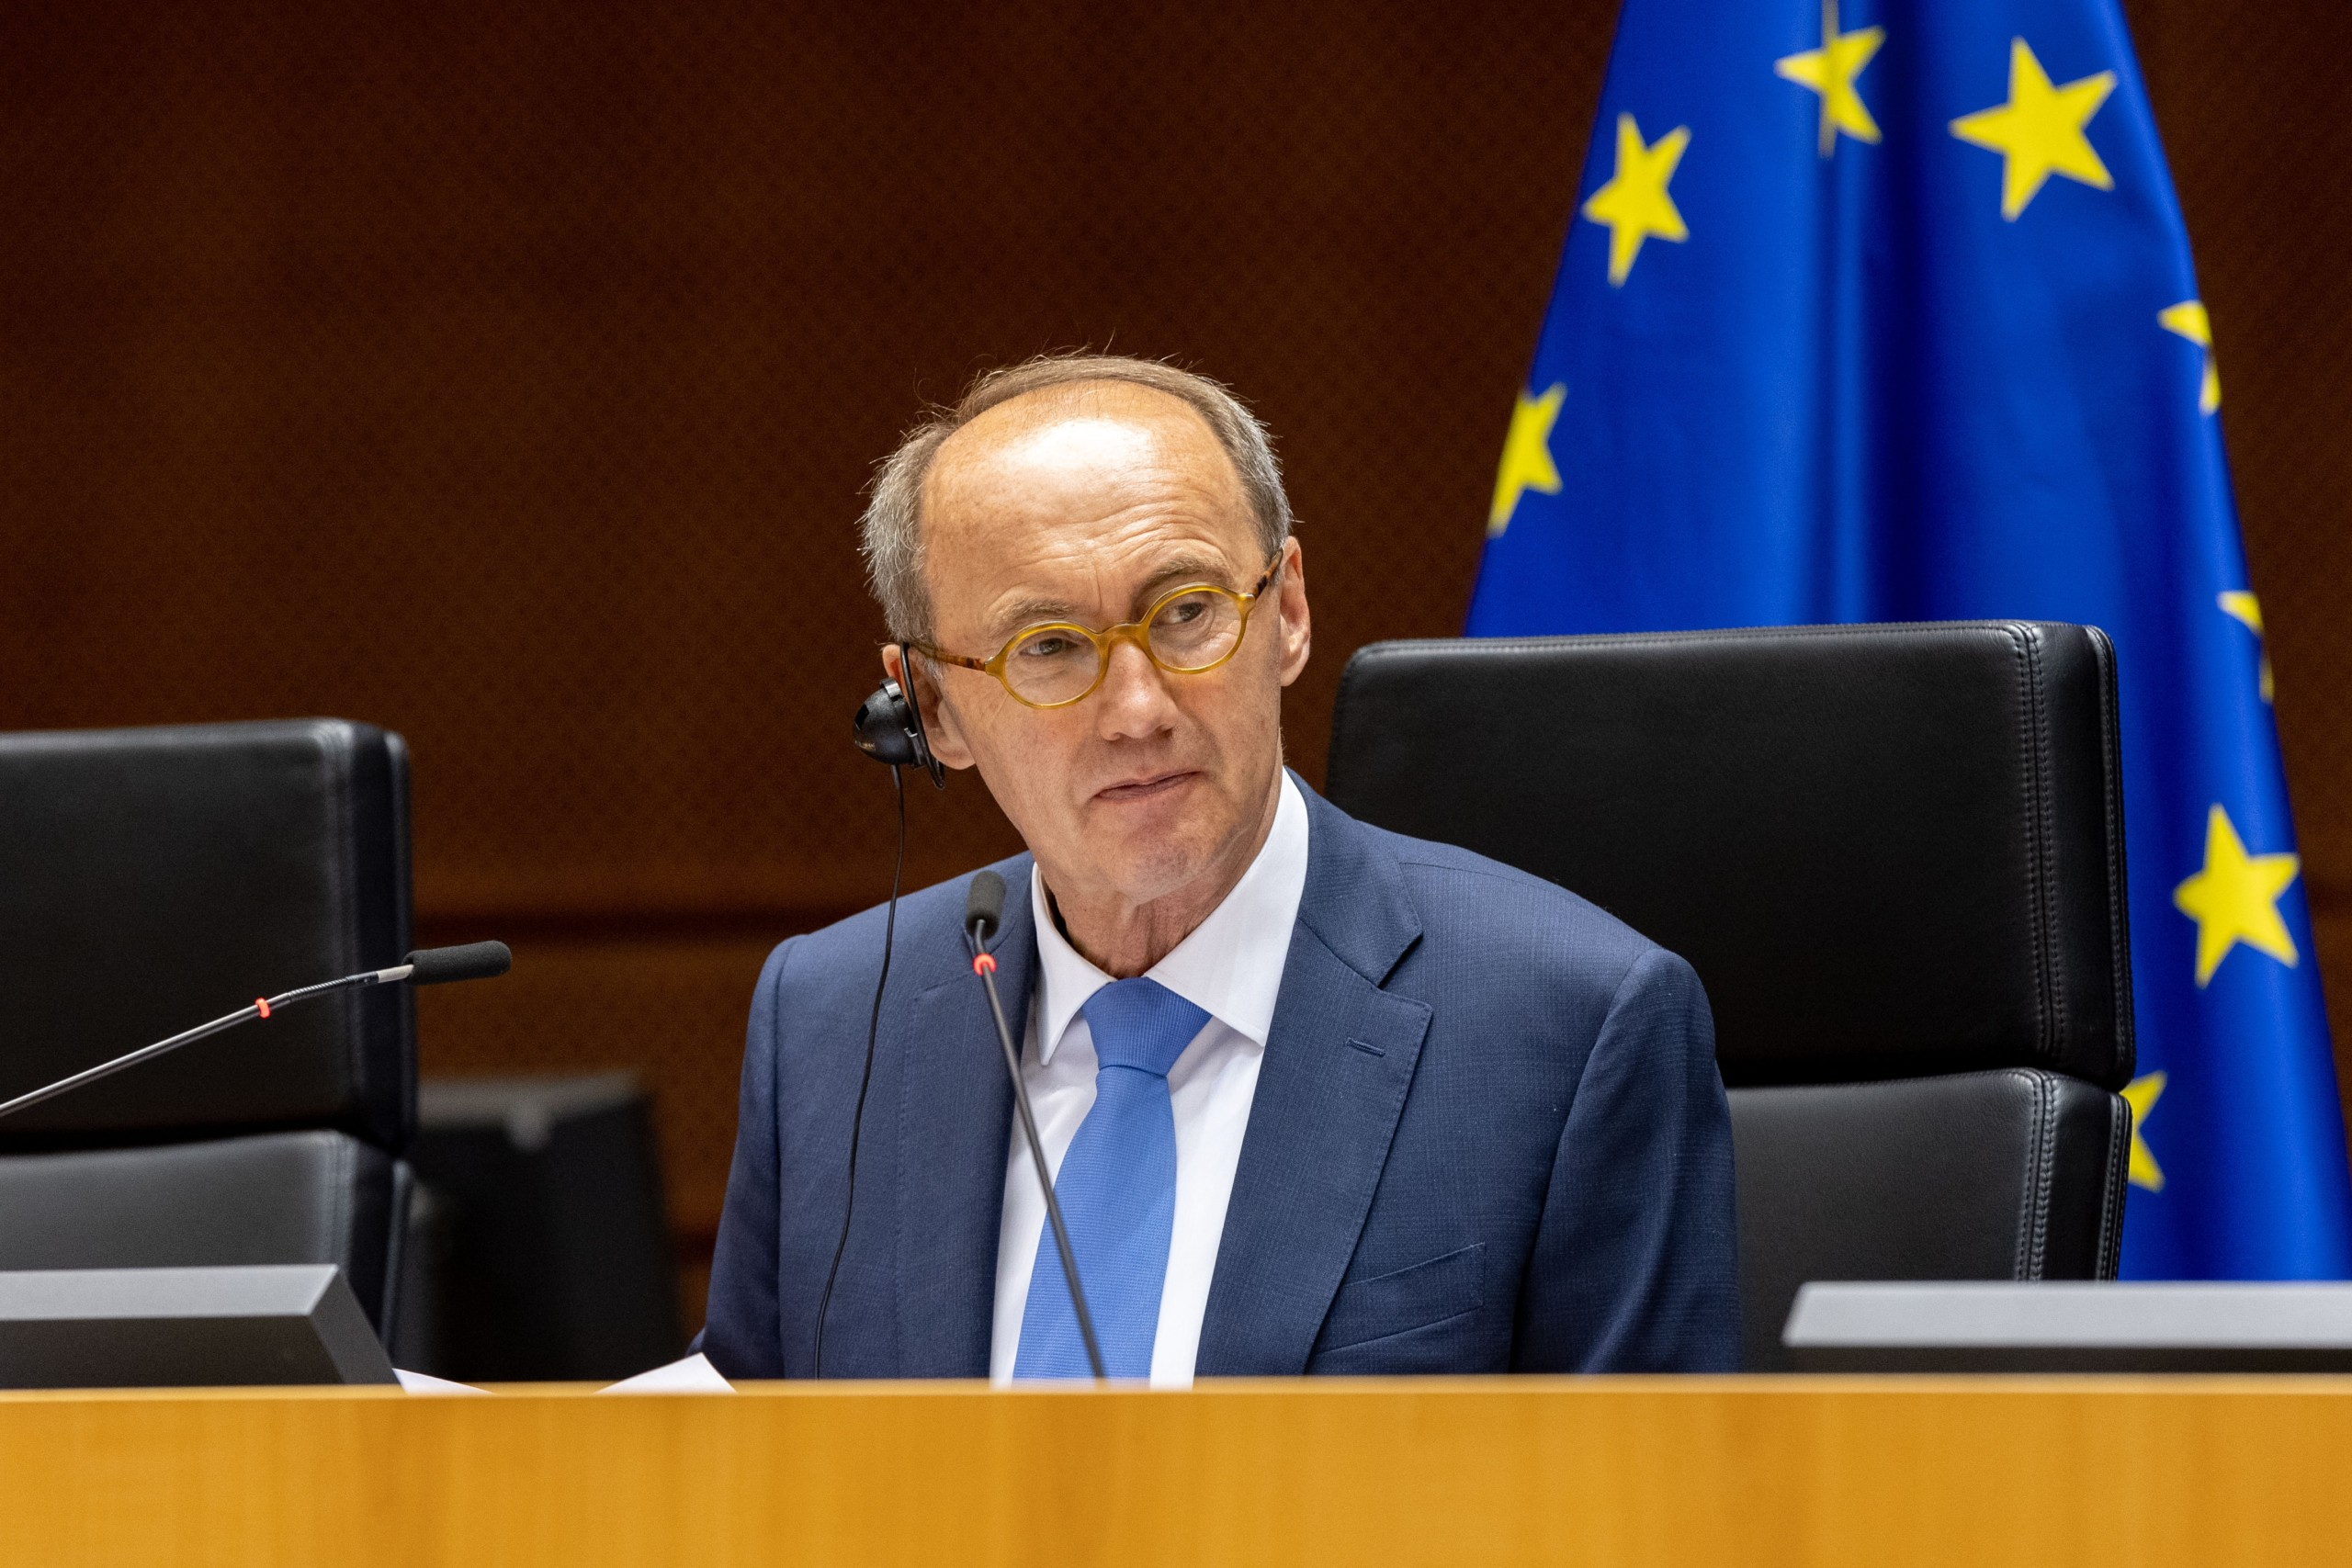 EP Plenary session - The conflict of interest of the Prime Minister of the Czech Republic